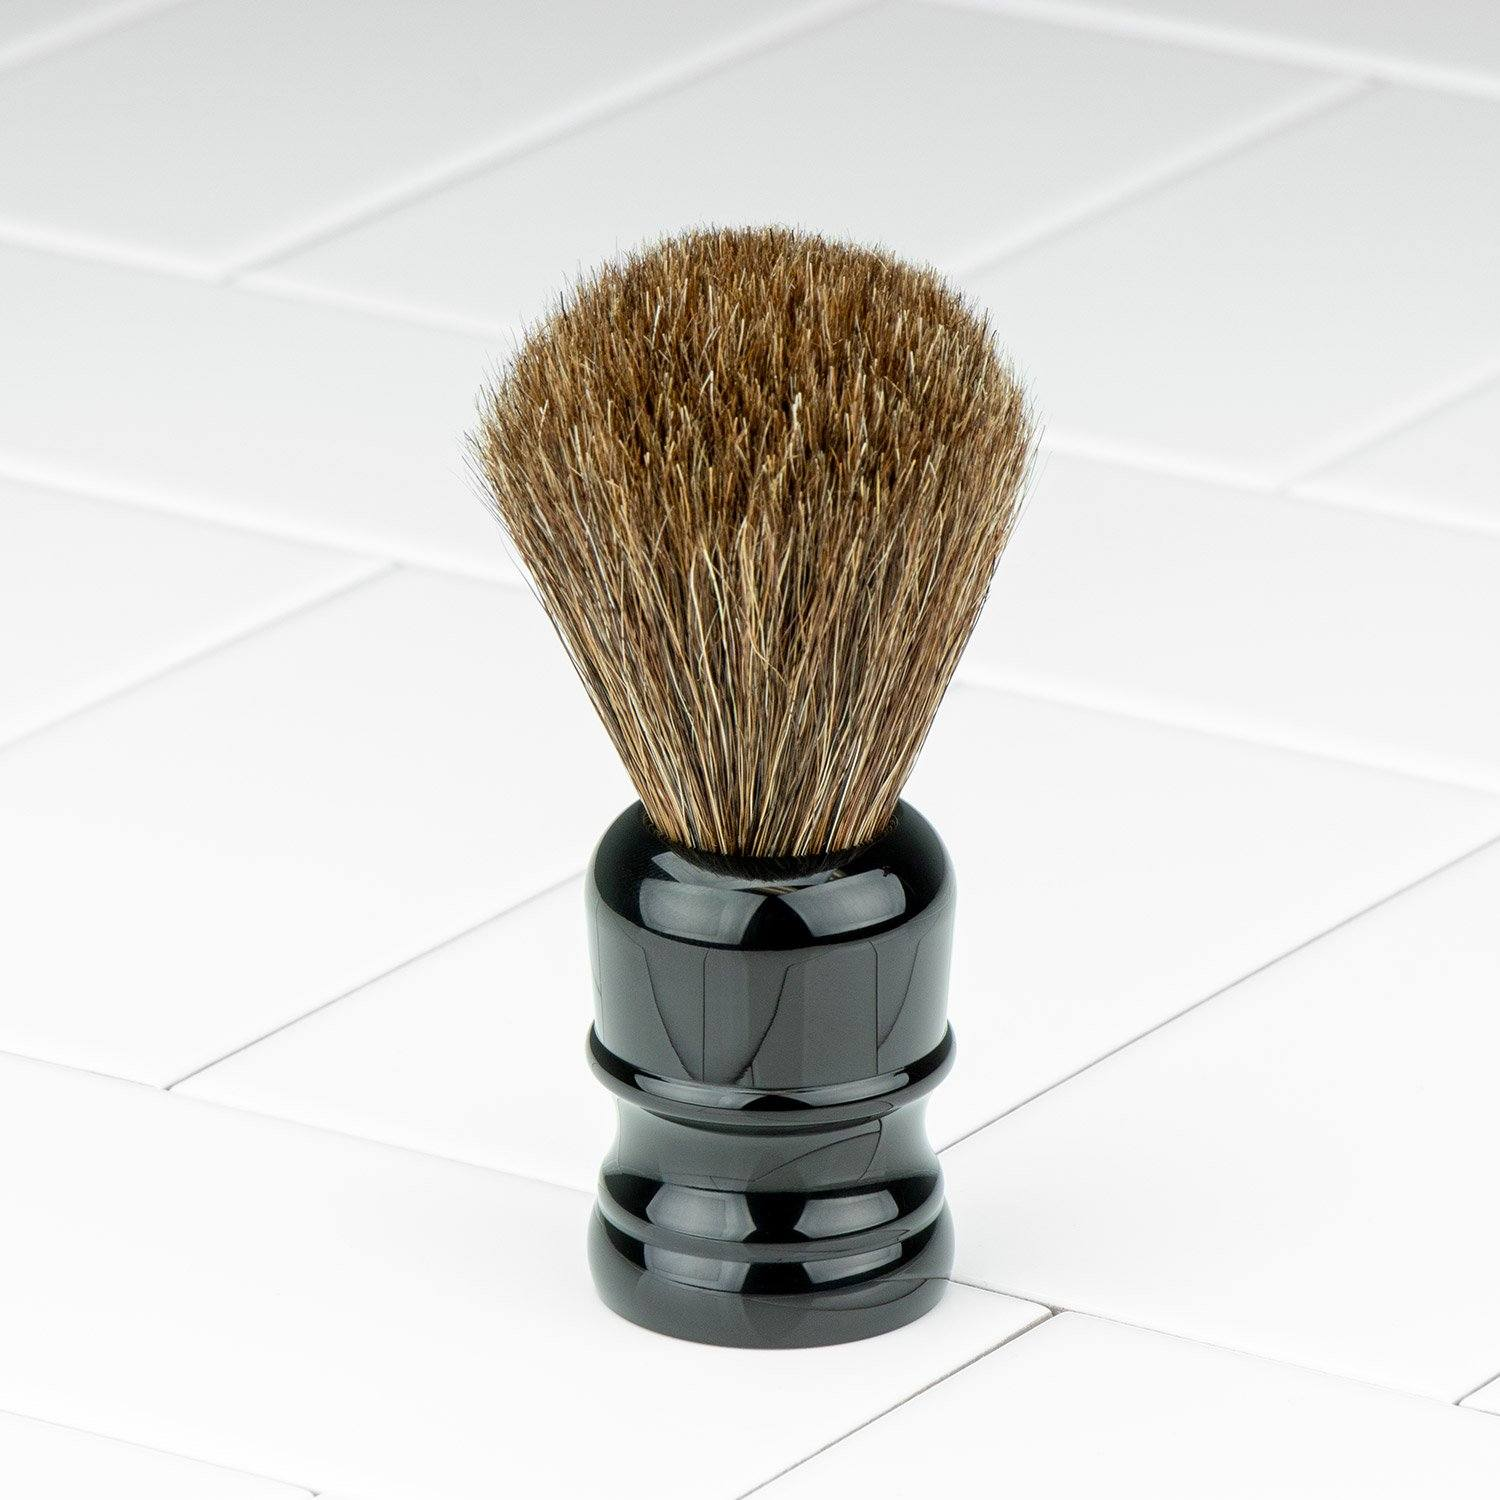 Hoxton Shave Co. Horse Hair Shaving Brush